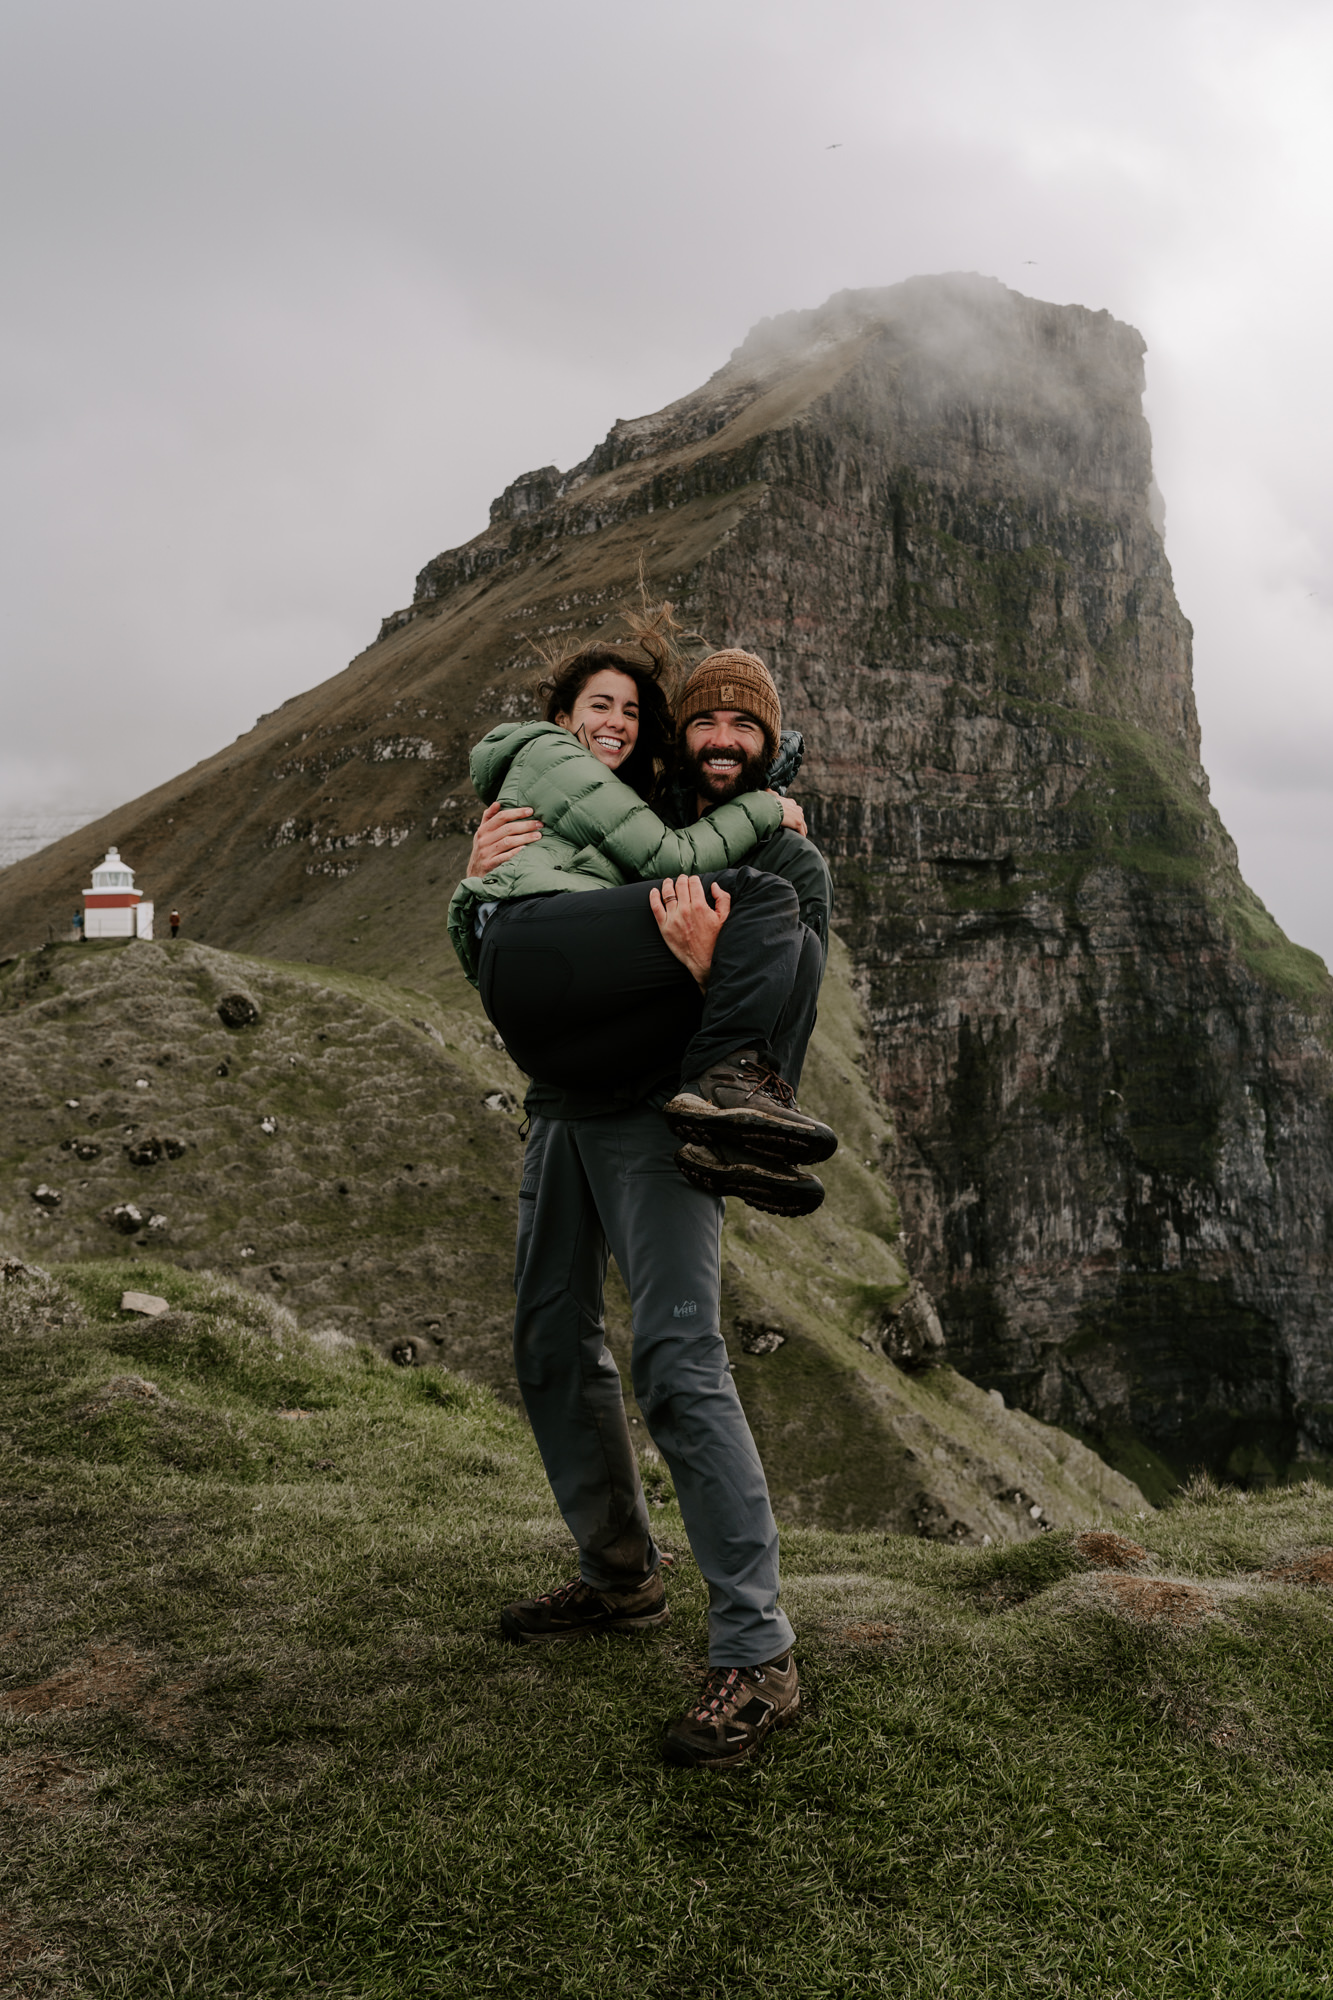 Hawaii-photographer-couple-traveling-in-mountains.jpg